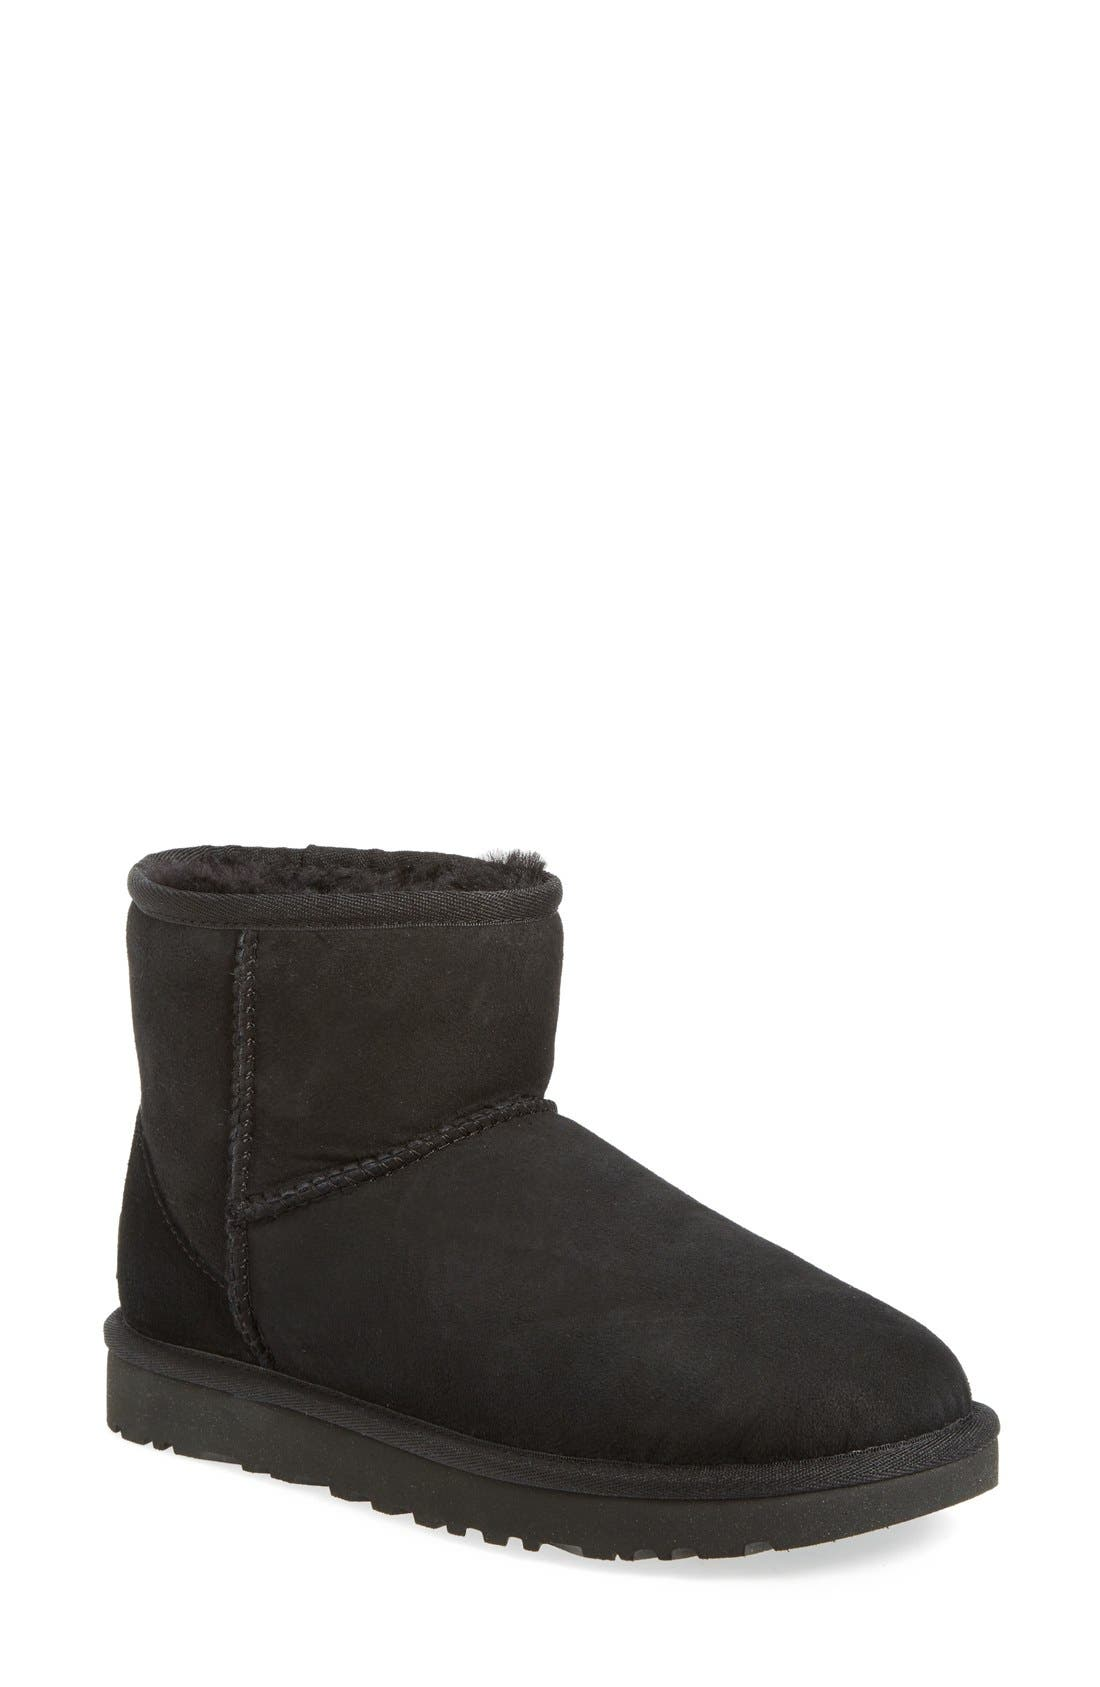 UGG<SUP>®</SUP>, Classic Mini II Genuine Shearling Lined Boot, Main thumbnail 1, color, BLACK SUEDE